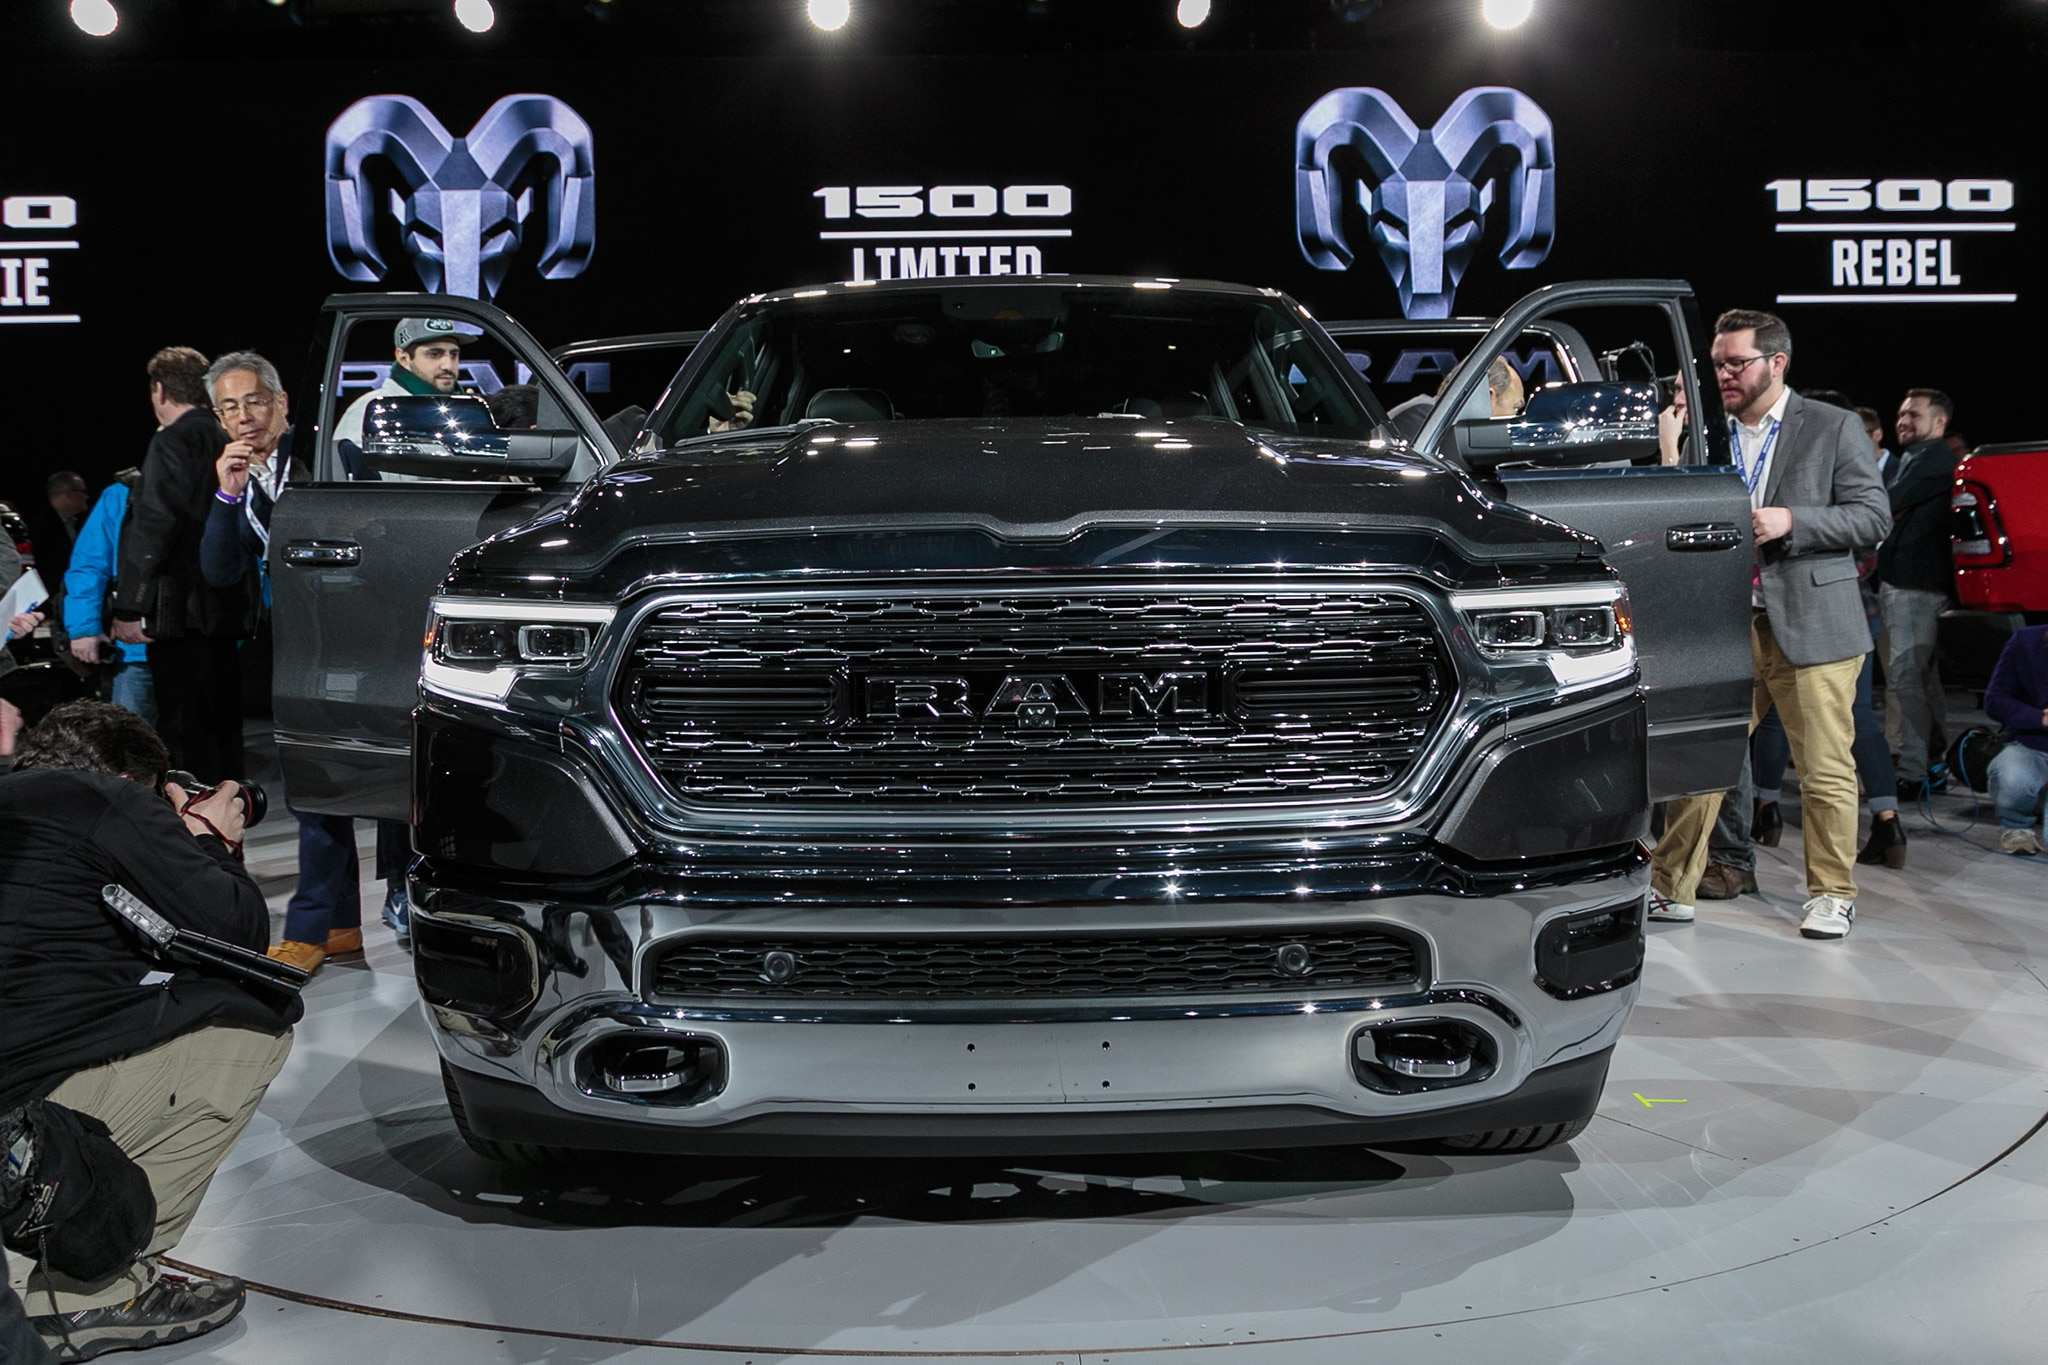 53 Concept of 2019 Dodge 2500 Limited Review for 2019 Dodge 2500 Limited